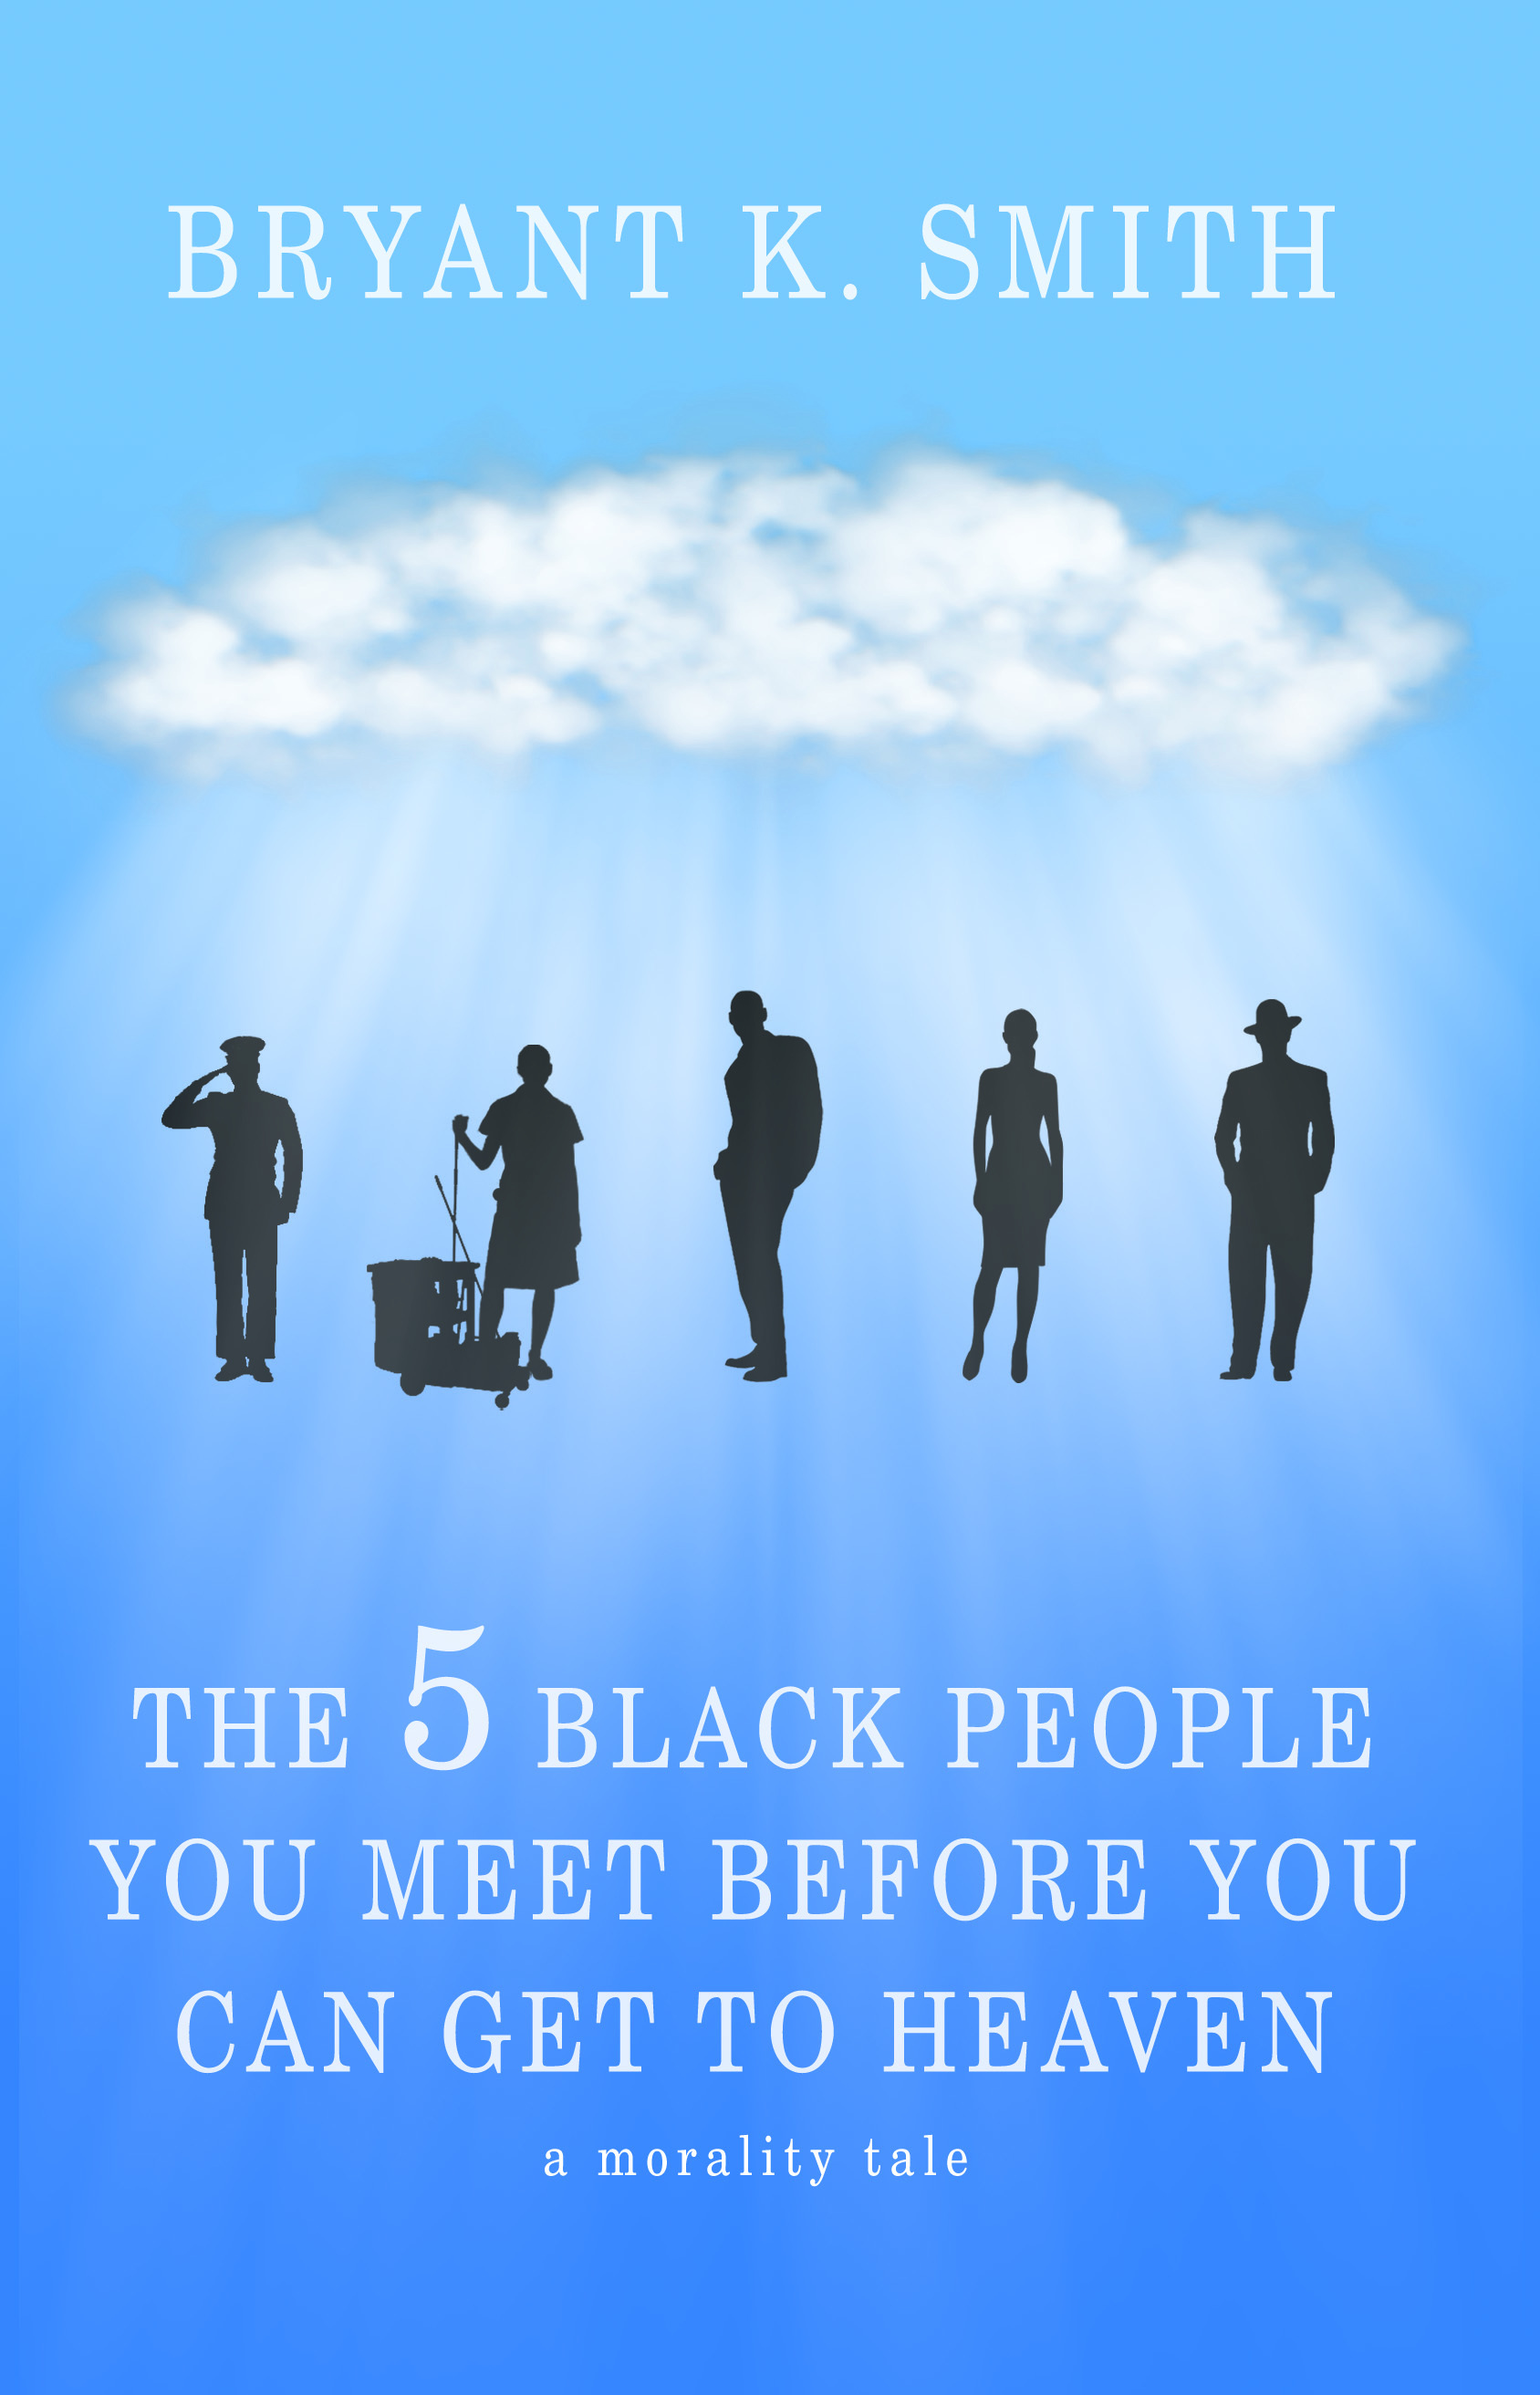 The 5 Black People You Meet Before You Can Get To Heaven: A Morality Tale